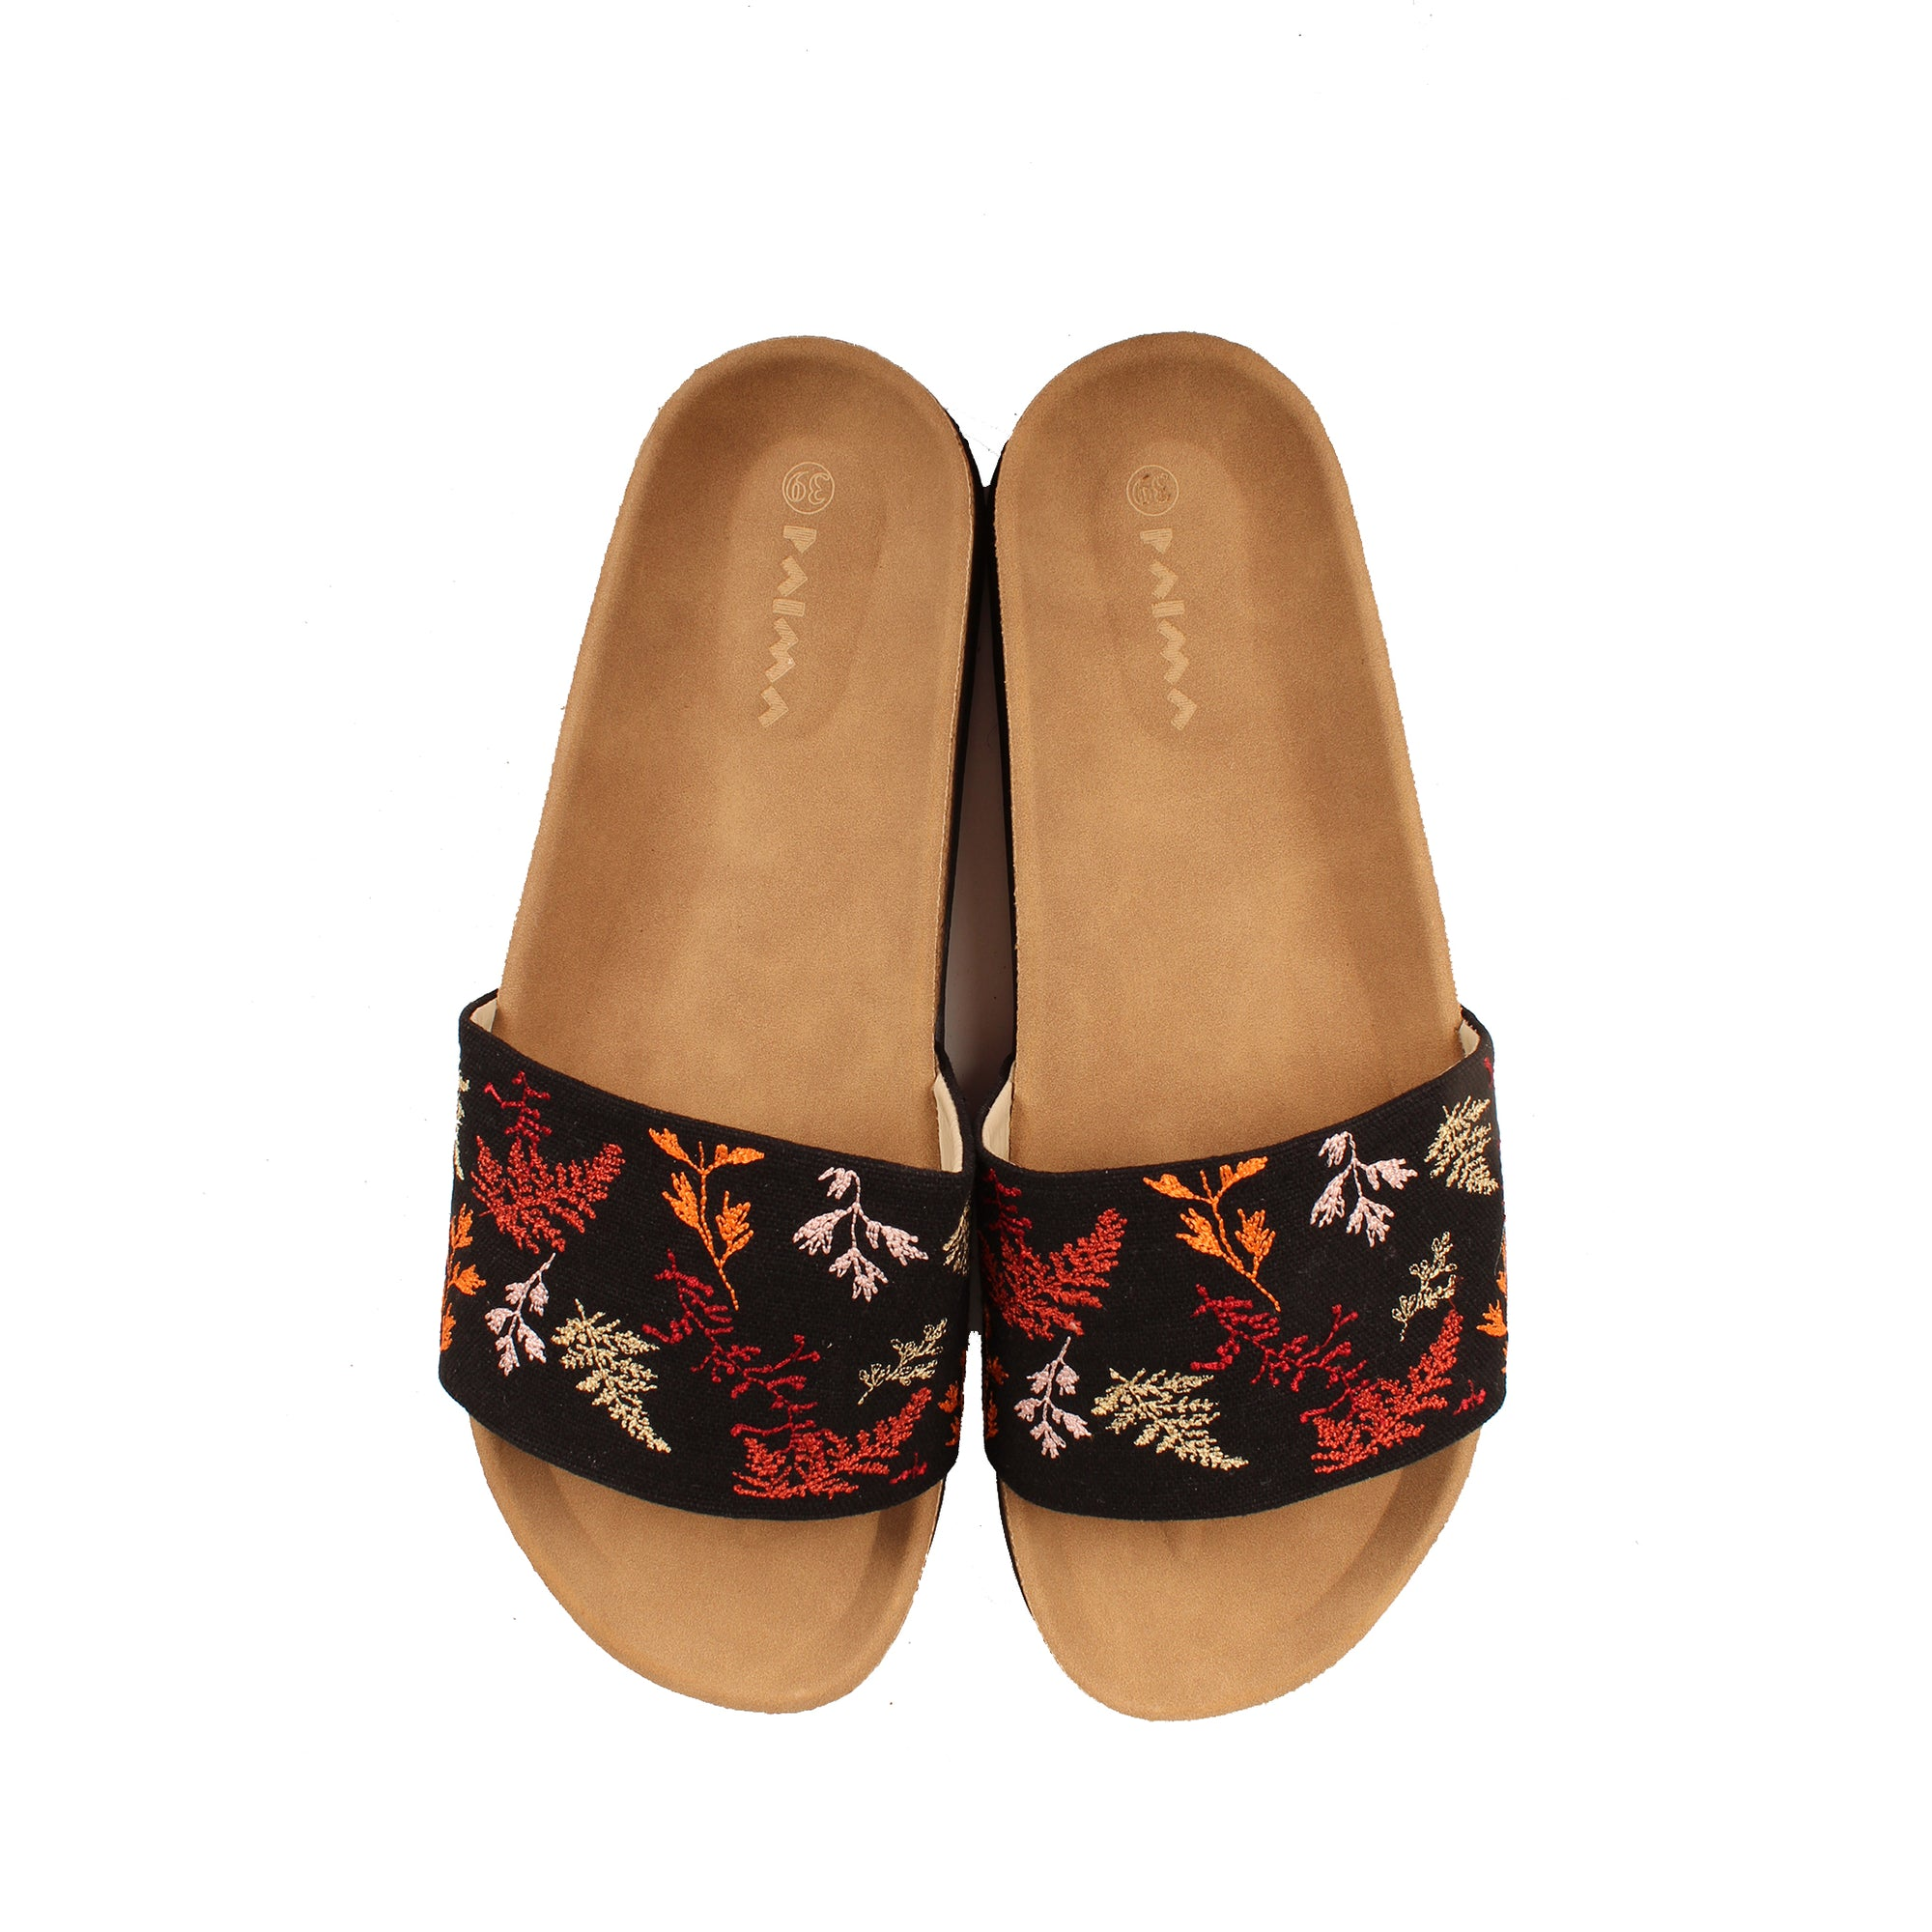 Autumn Leaves Slides Navy